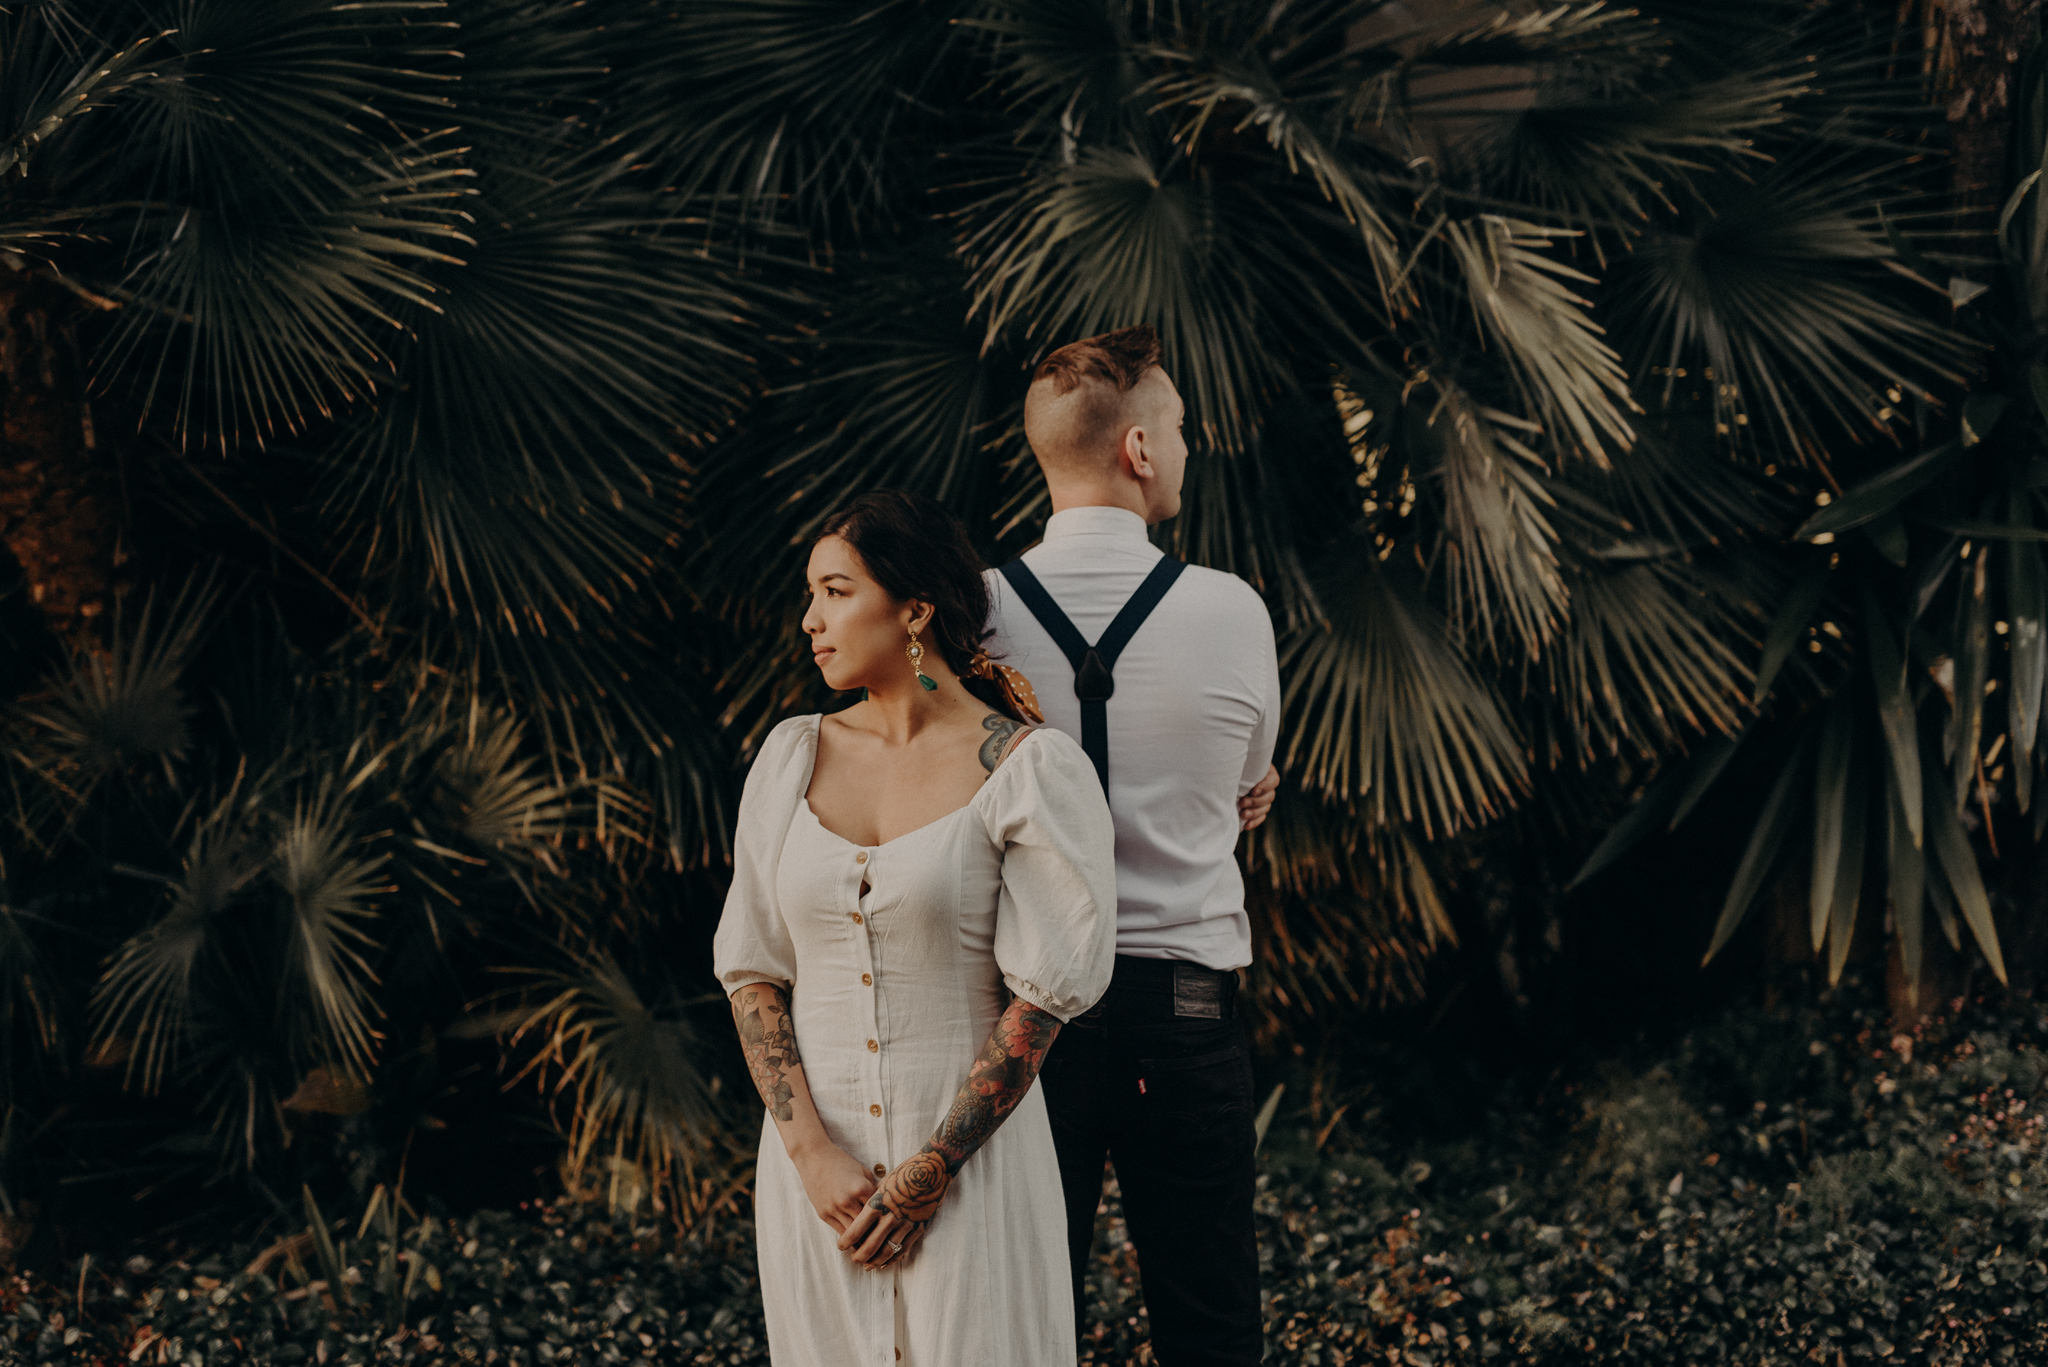 Wedding Photographer in LA - Los Angeles Wedding Photos - Tattoo Shop Engagement Session - IsaiahAndTaylor.com-053.jpg